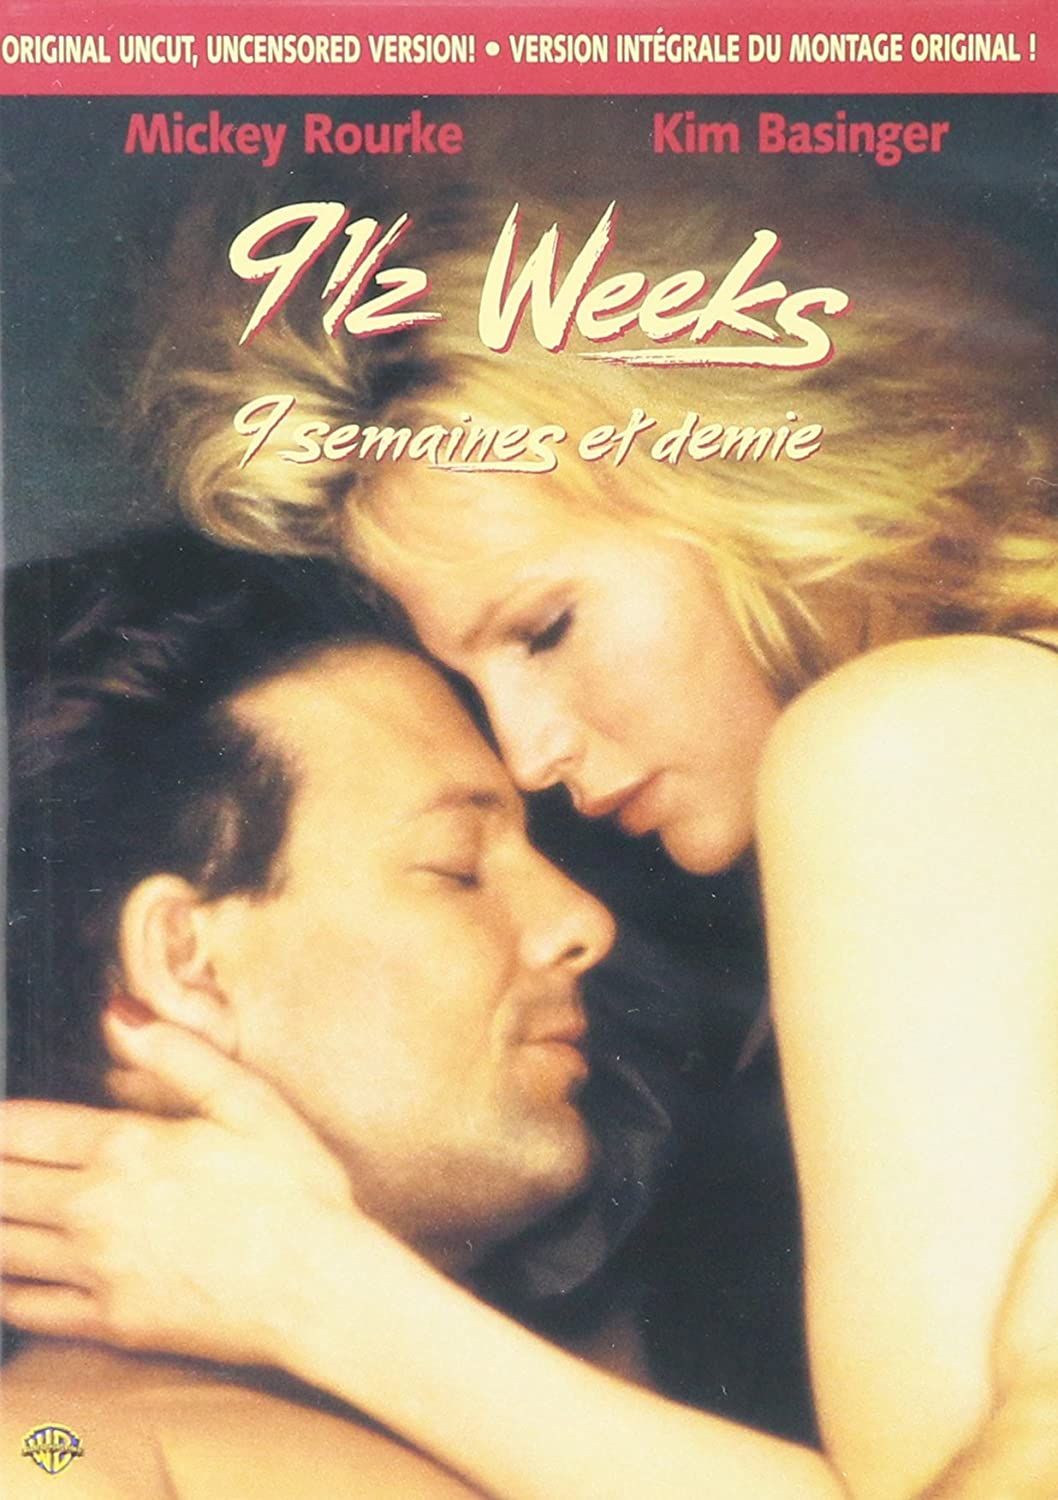 9 1 2 weeks 1986 full movie free download